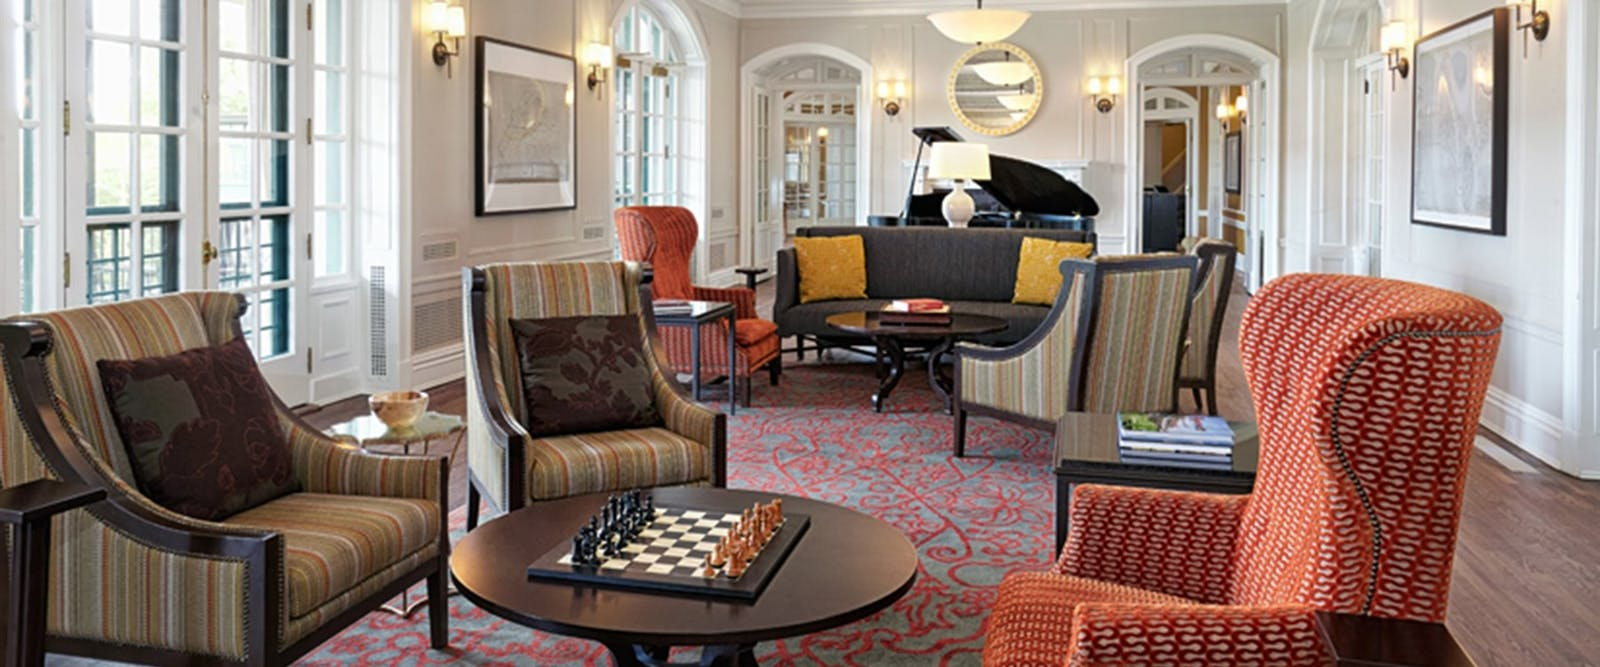 Lounge room at The Algonquin Resort, St. Andrews